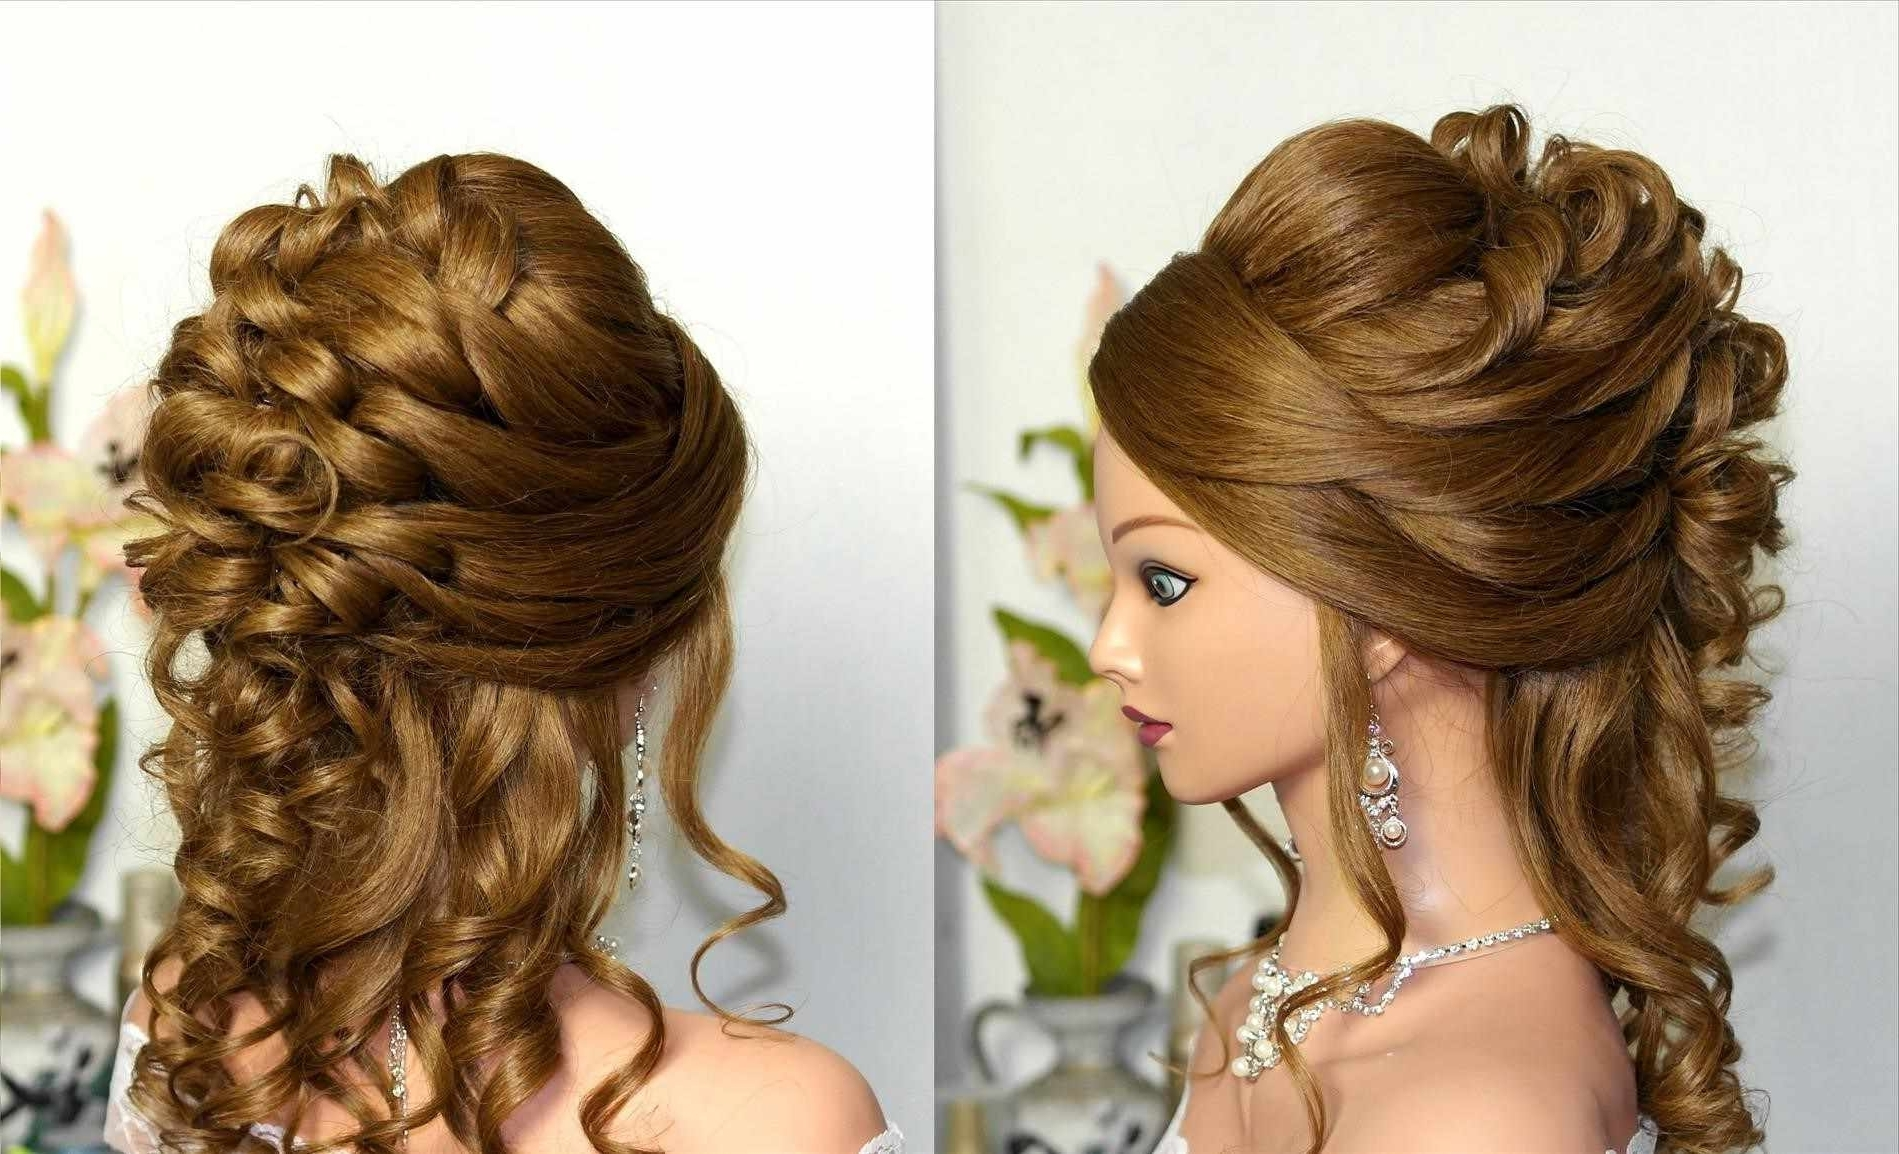 Updo Updo Hairstyles For Long Curly Hair Hairstyles For Prom Curly Regarding Curly Updo Hairstyles (View 15 of 15)